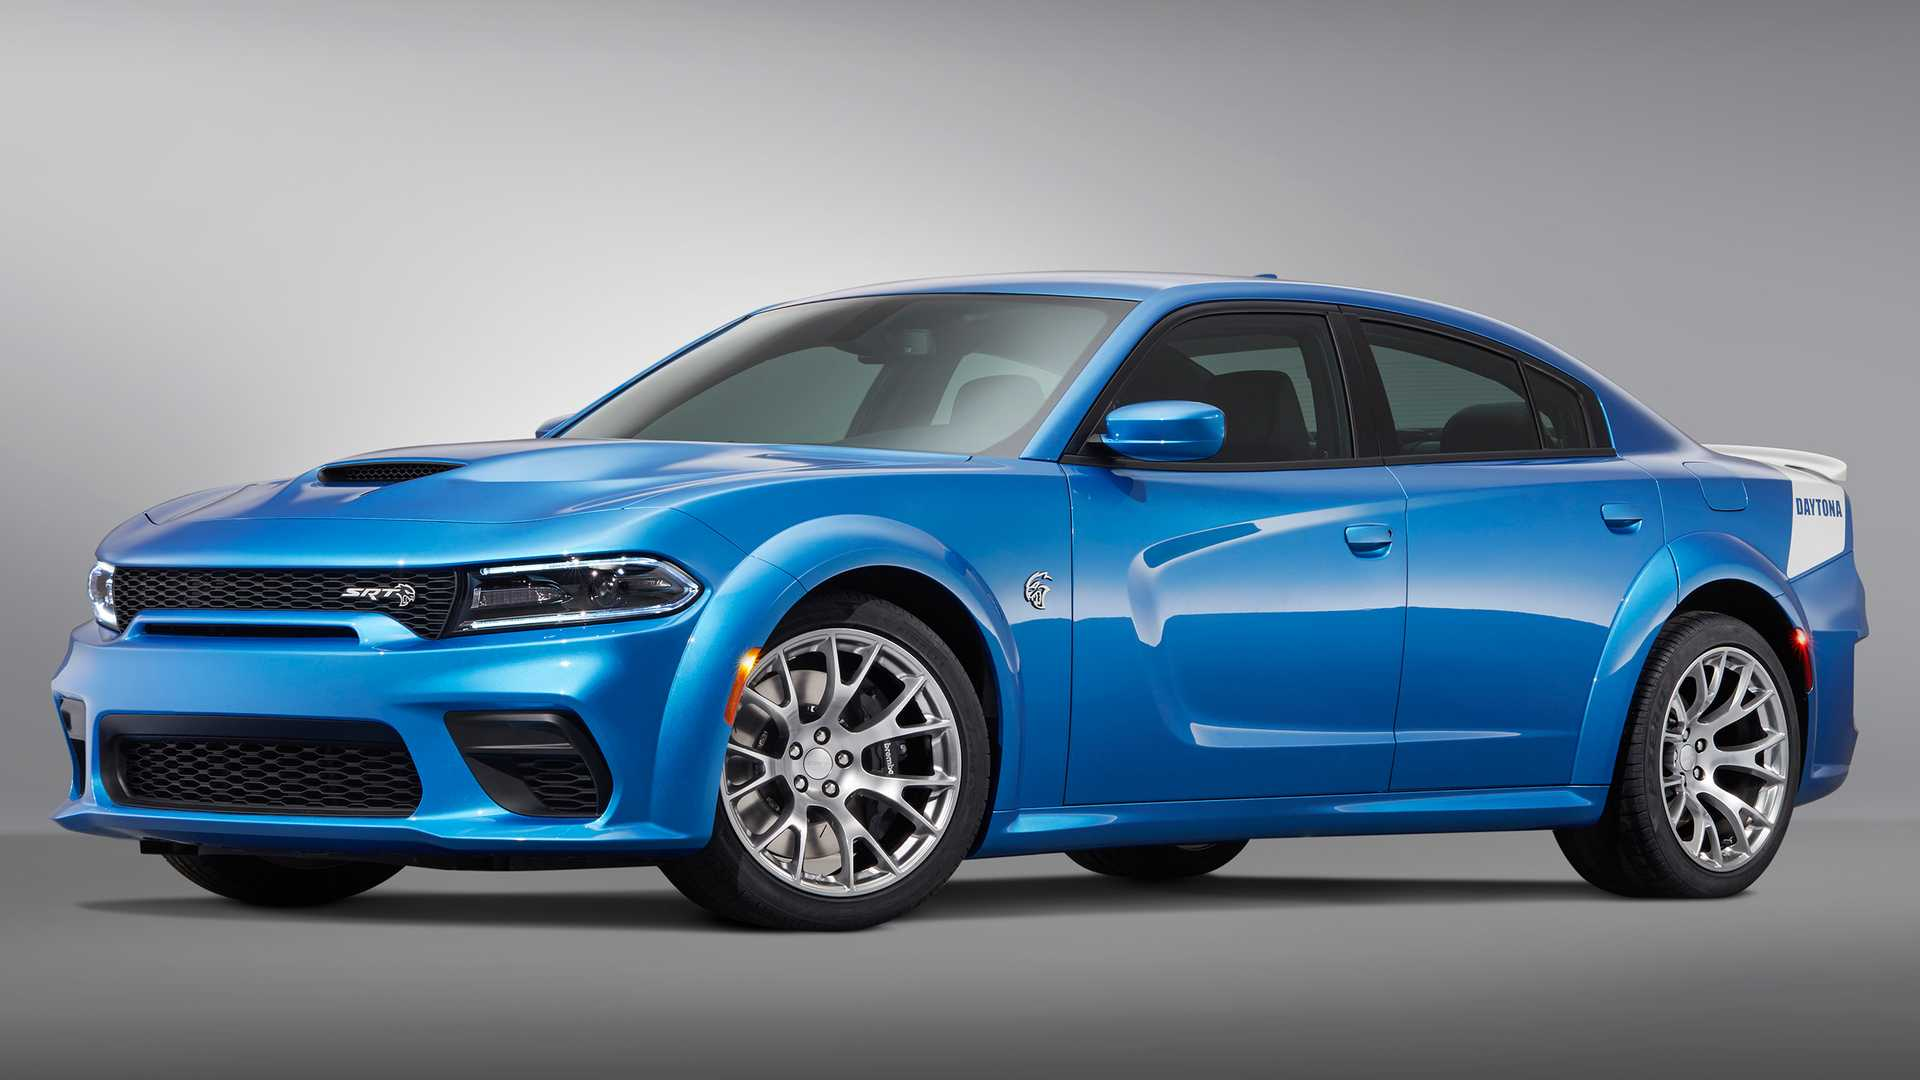 17 All New Dodge Srt 2020 Prices with Dodge Srt 2020